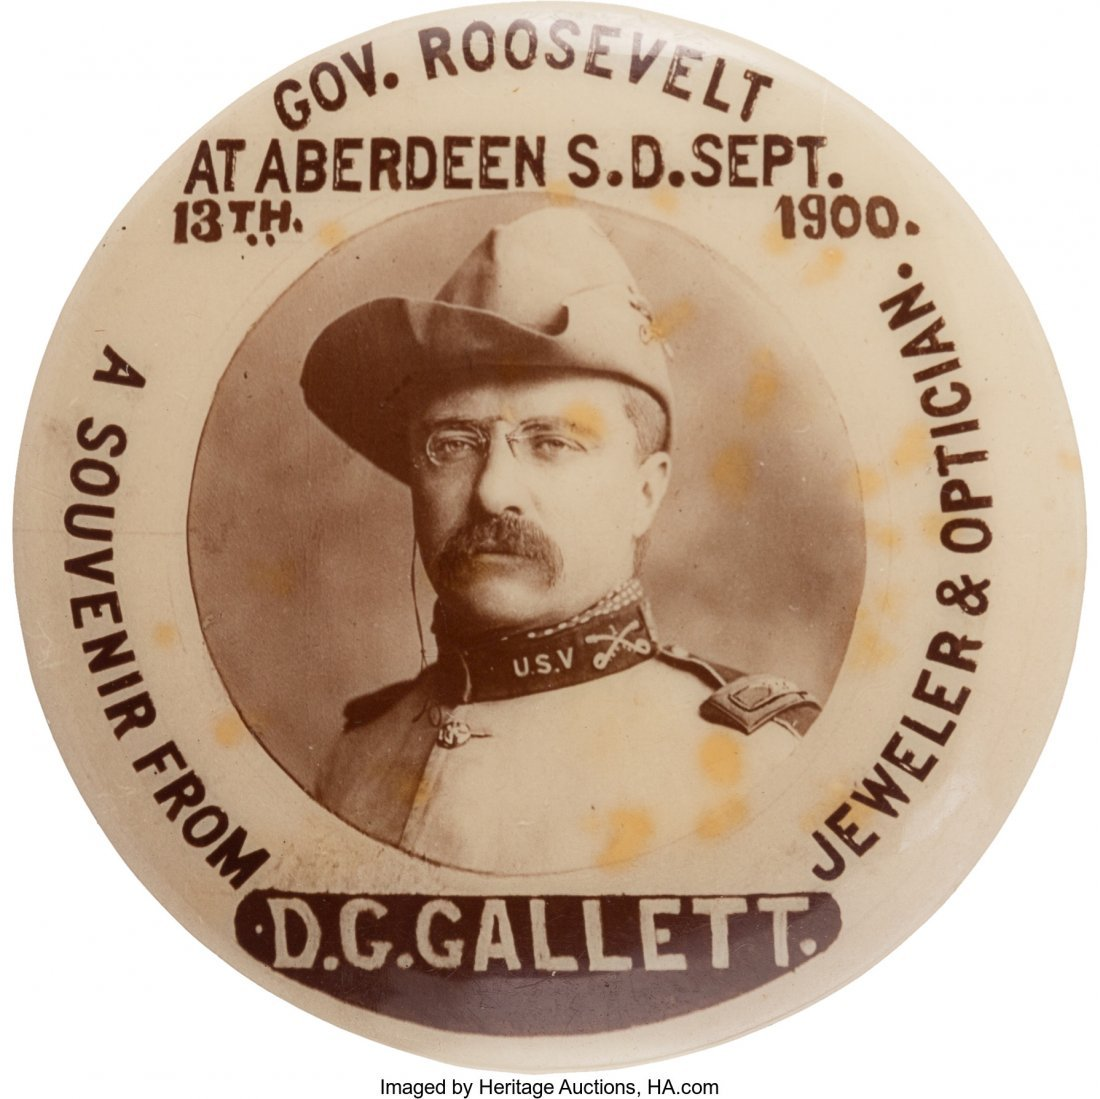 43452: Theodore Roosevelt: Real Photo Rough Rider Reuni